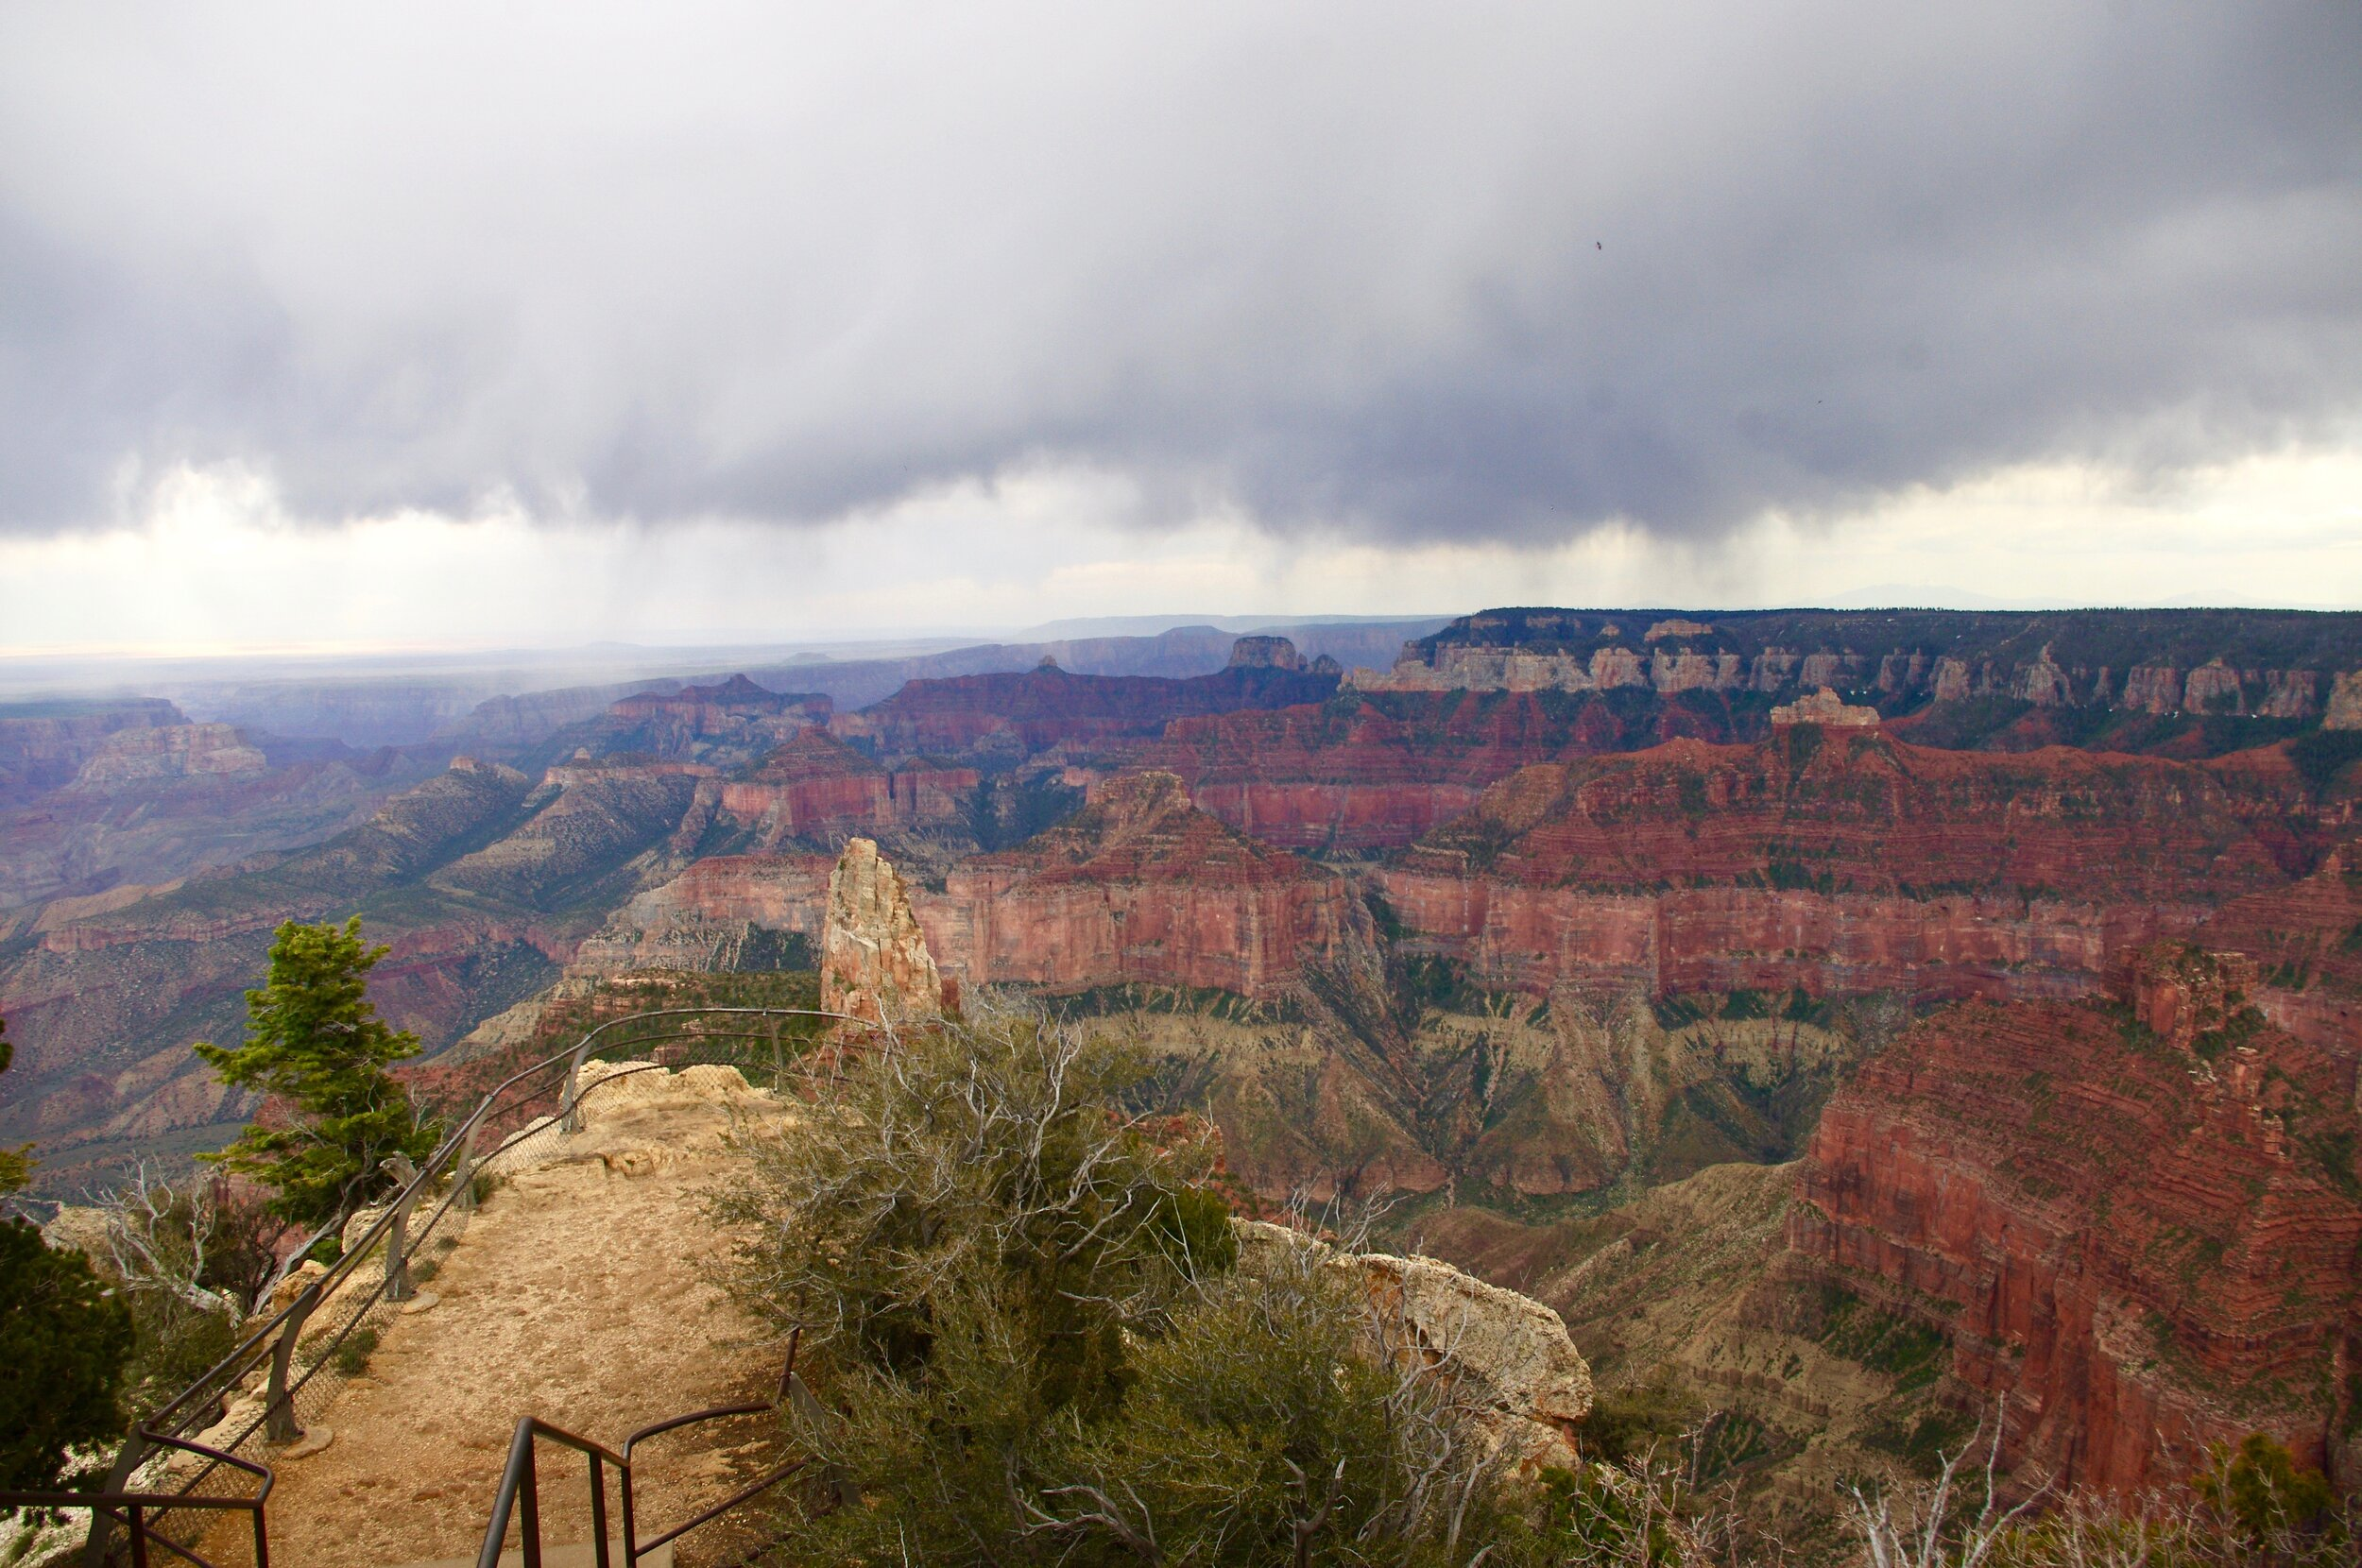 More rain over the canyon